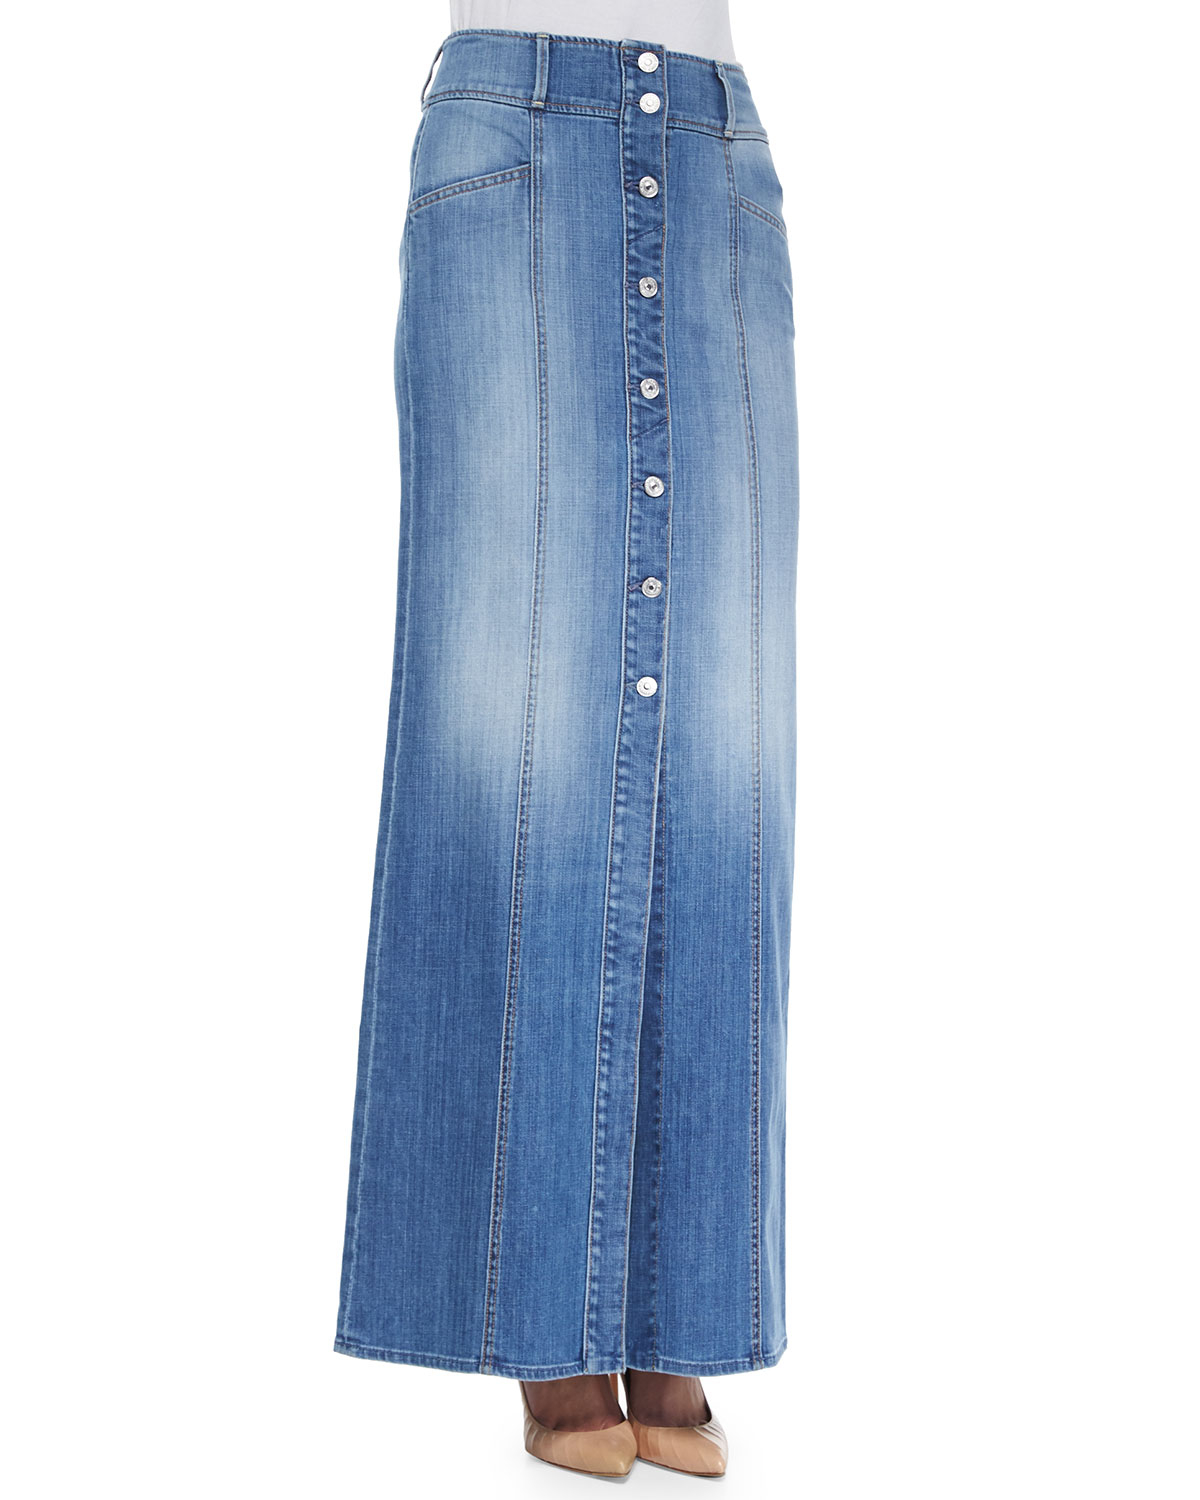 7 for all mankind button front denim skirt in blue lyst